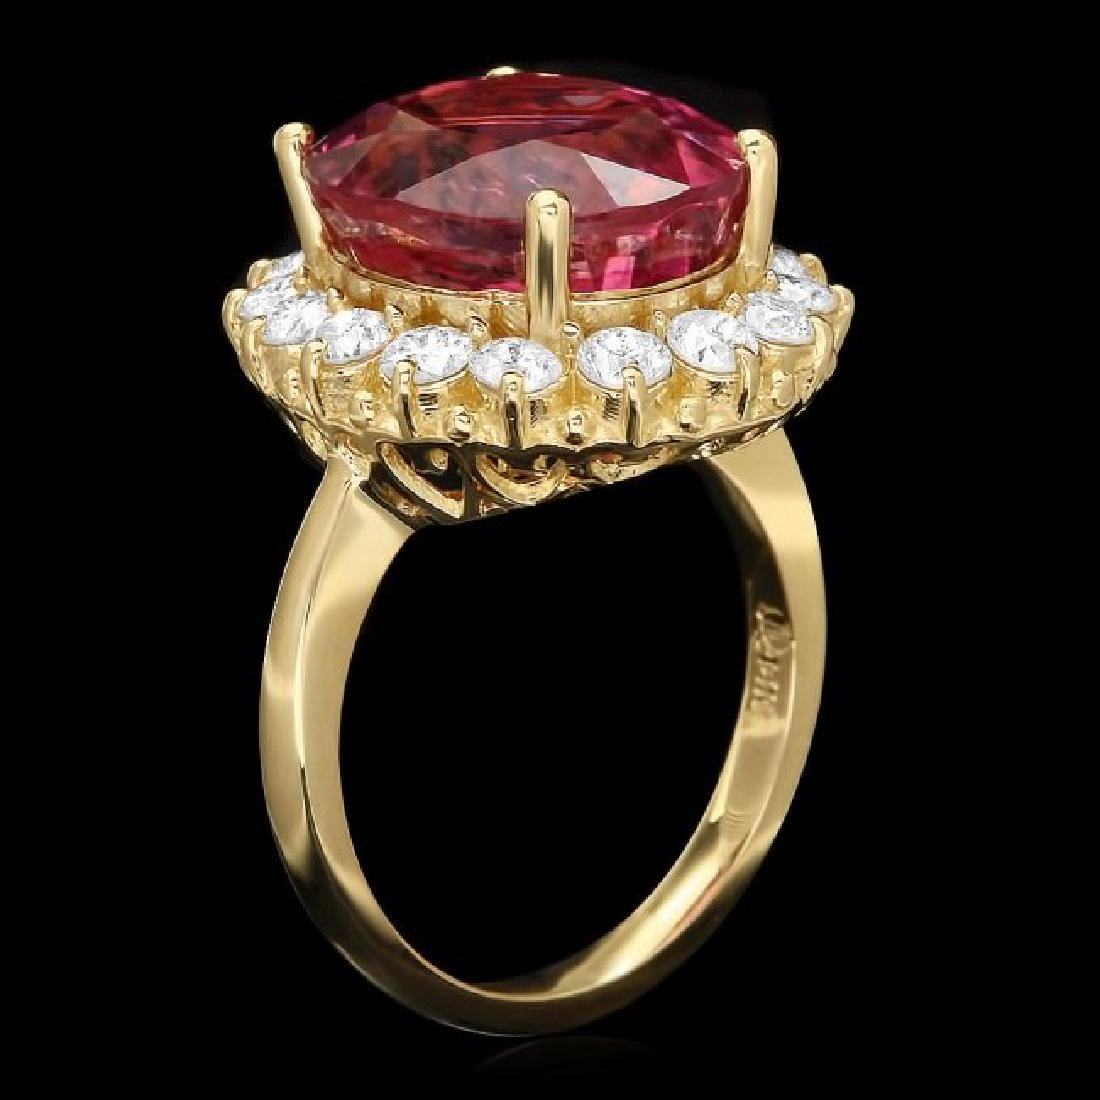 14k Gold 10.50ct Tourmaline 1.50ct Diamond Ring - 2